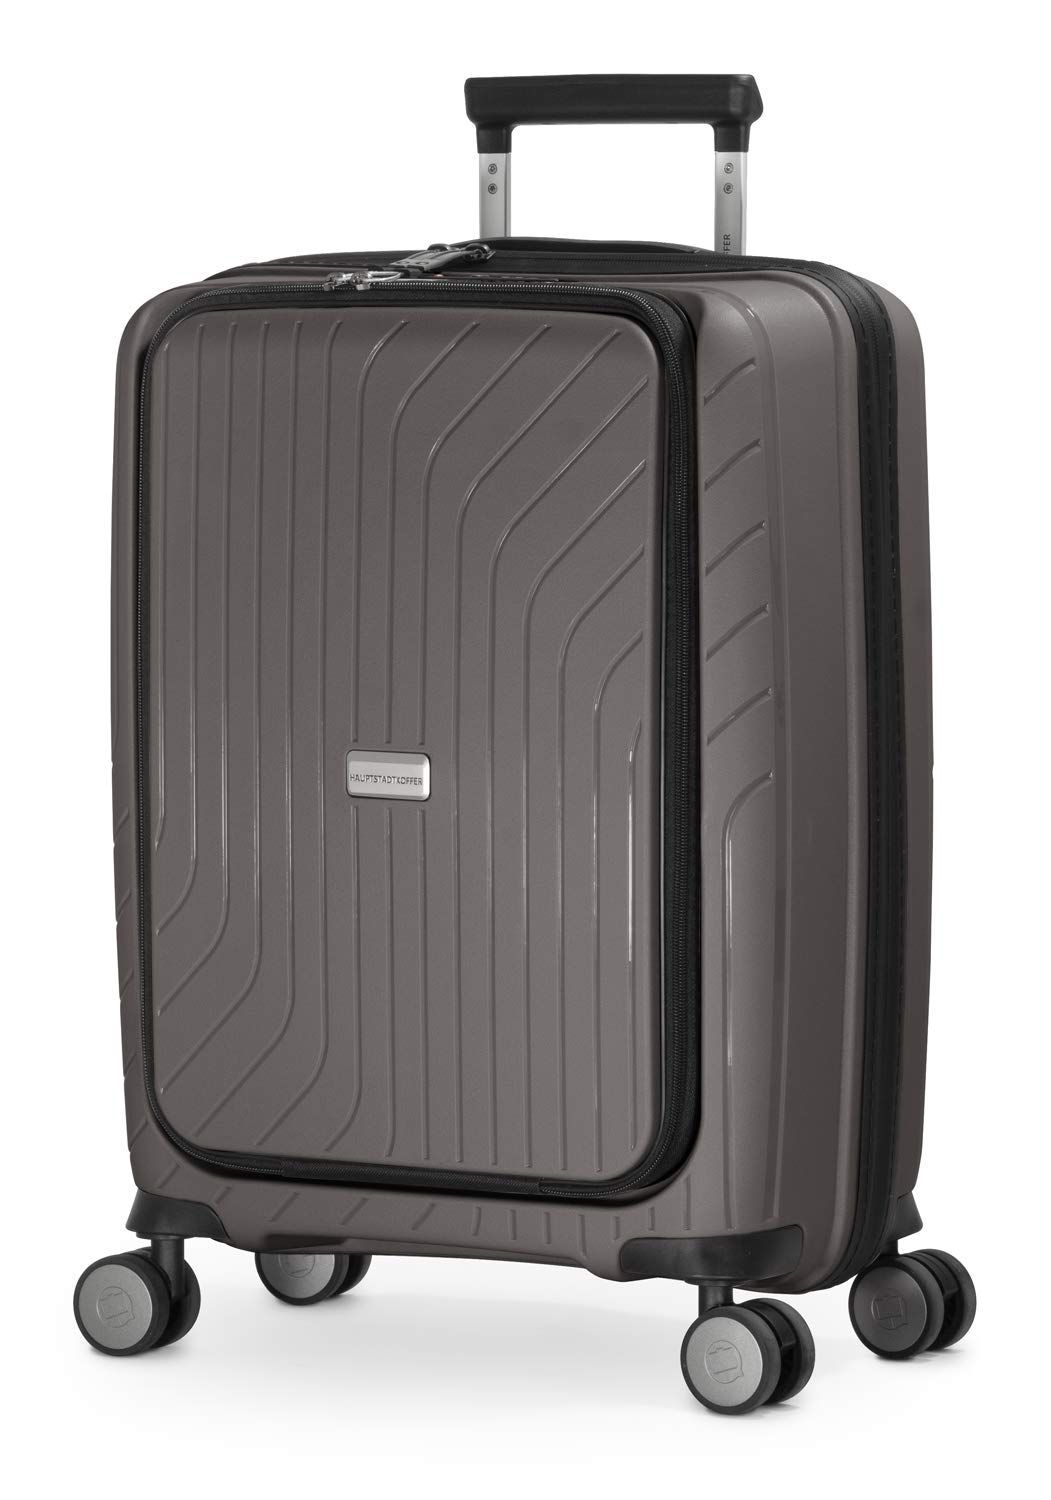 Hauptstadtkoffer Txl Lightweight Carry On Luggage With Laptop Bag Sturdy Cabin Size Hardside Trolley Lightweight Carry On Luggage Carry On Luggage Luggage